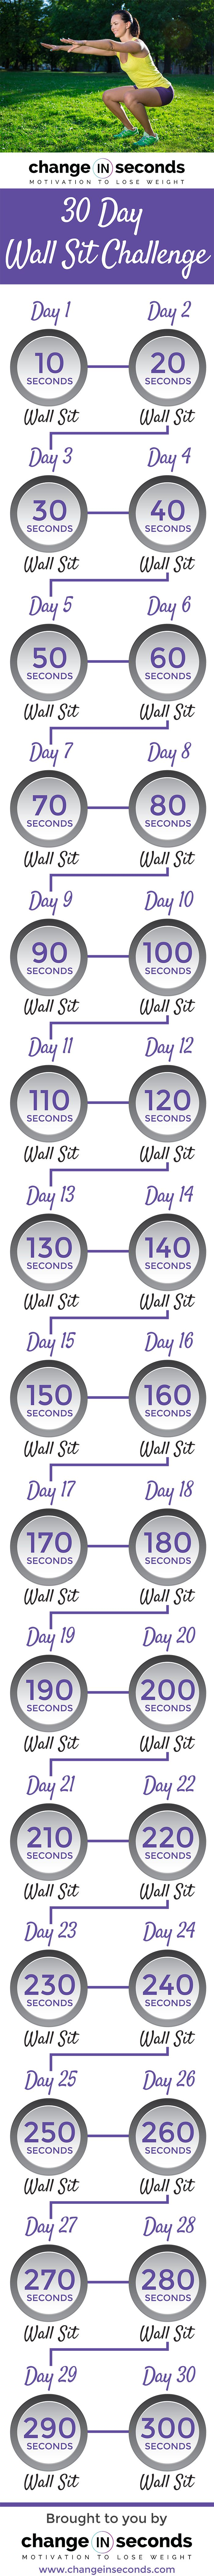 30 Day Wall Sit Challenge (Download PDF) http://www.changeinseconds.com/30-day-wall-sit-challenge/